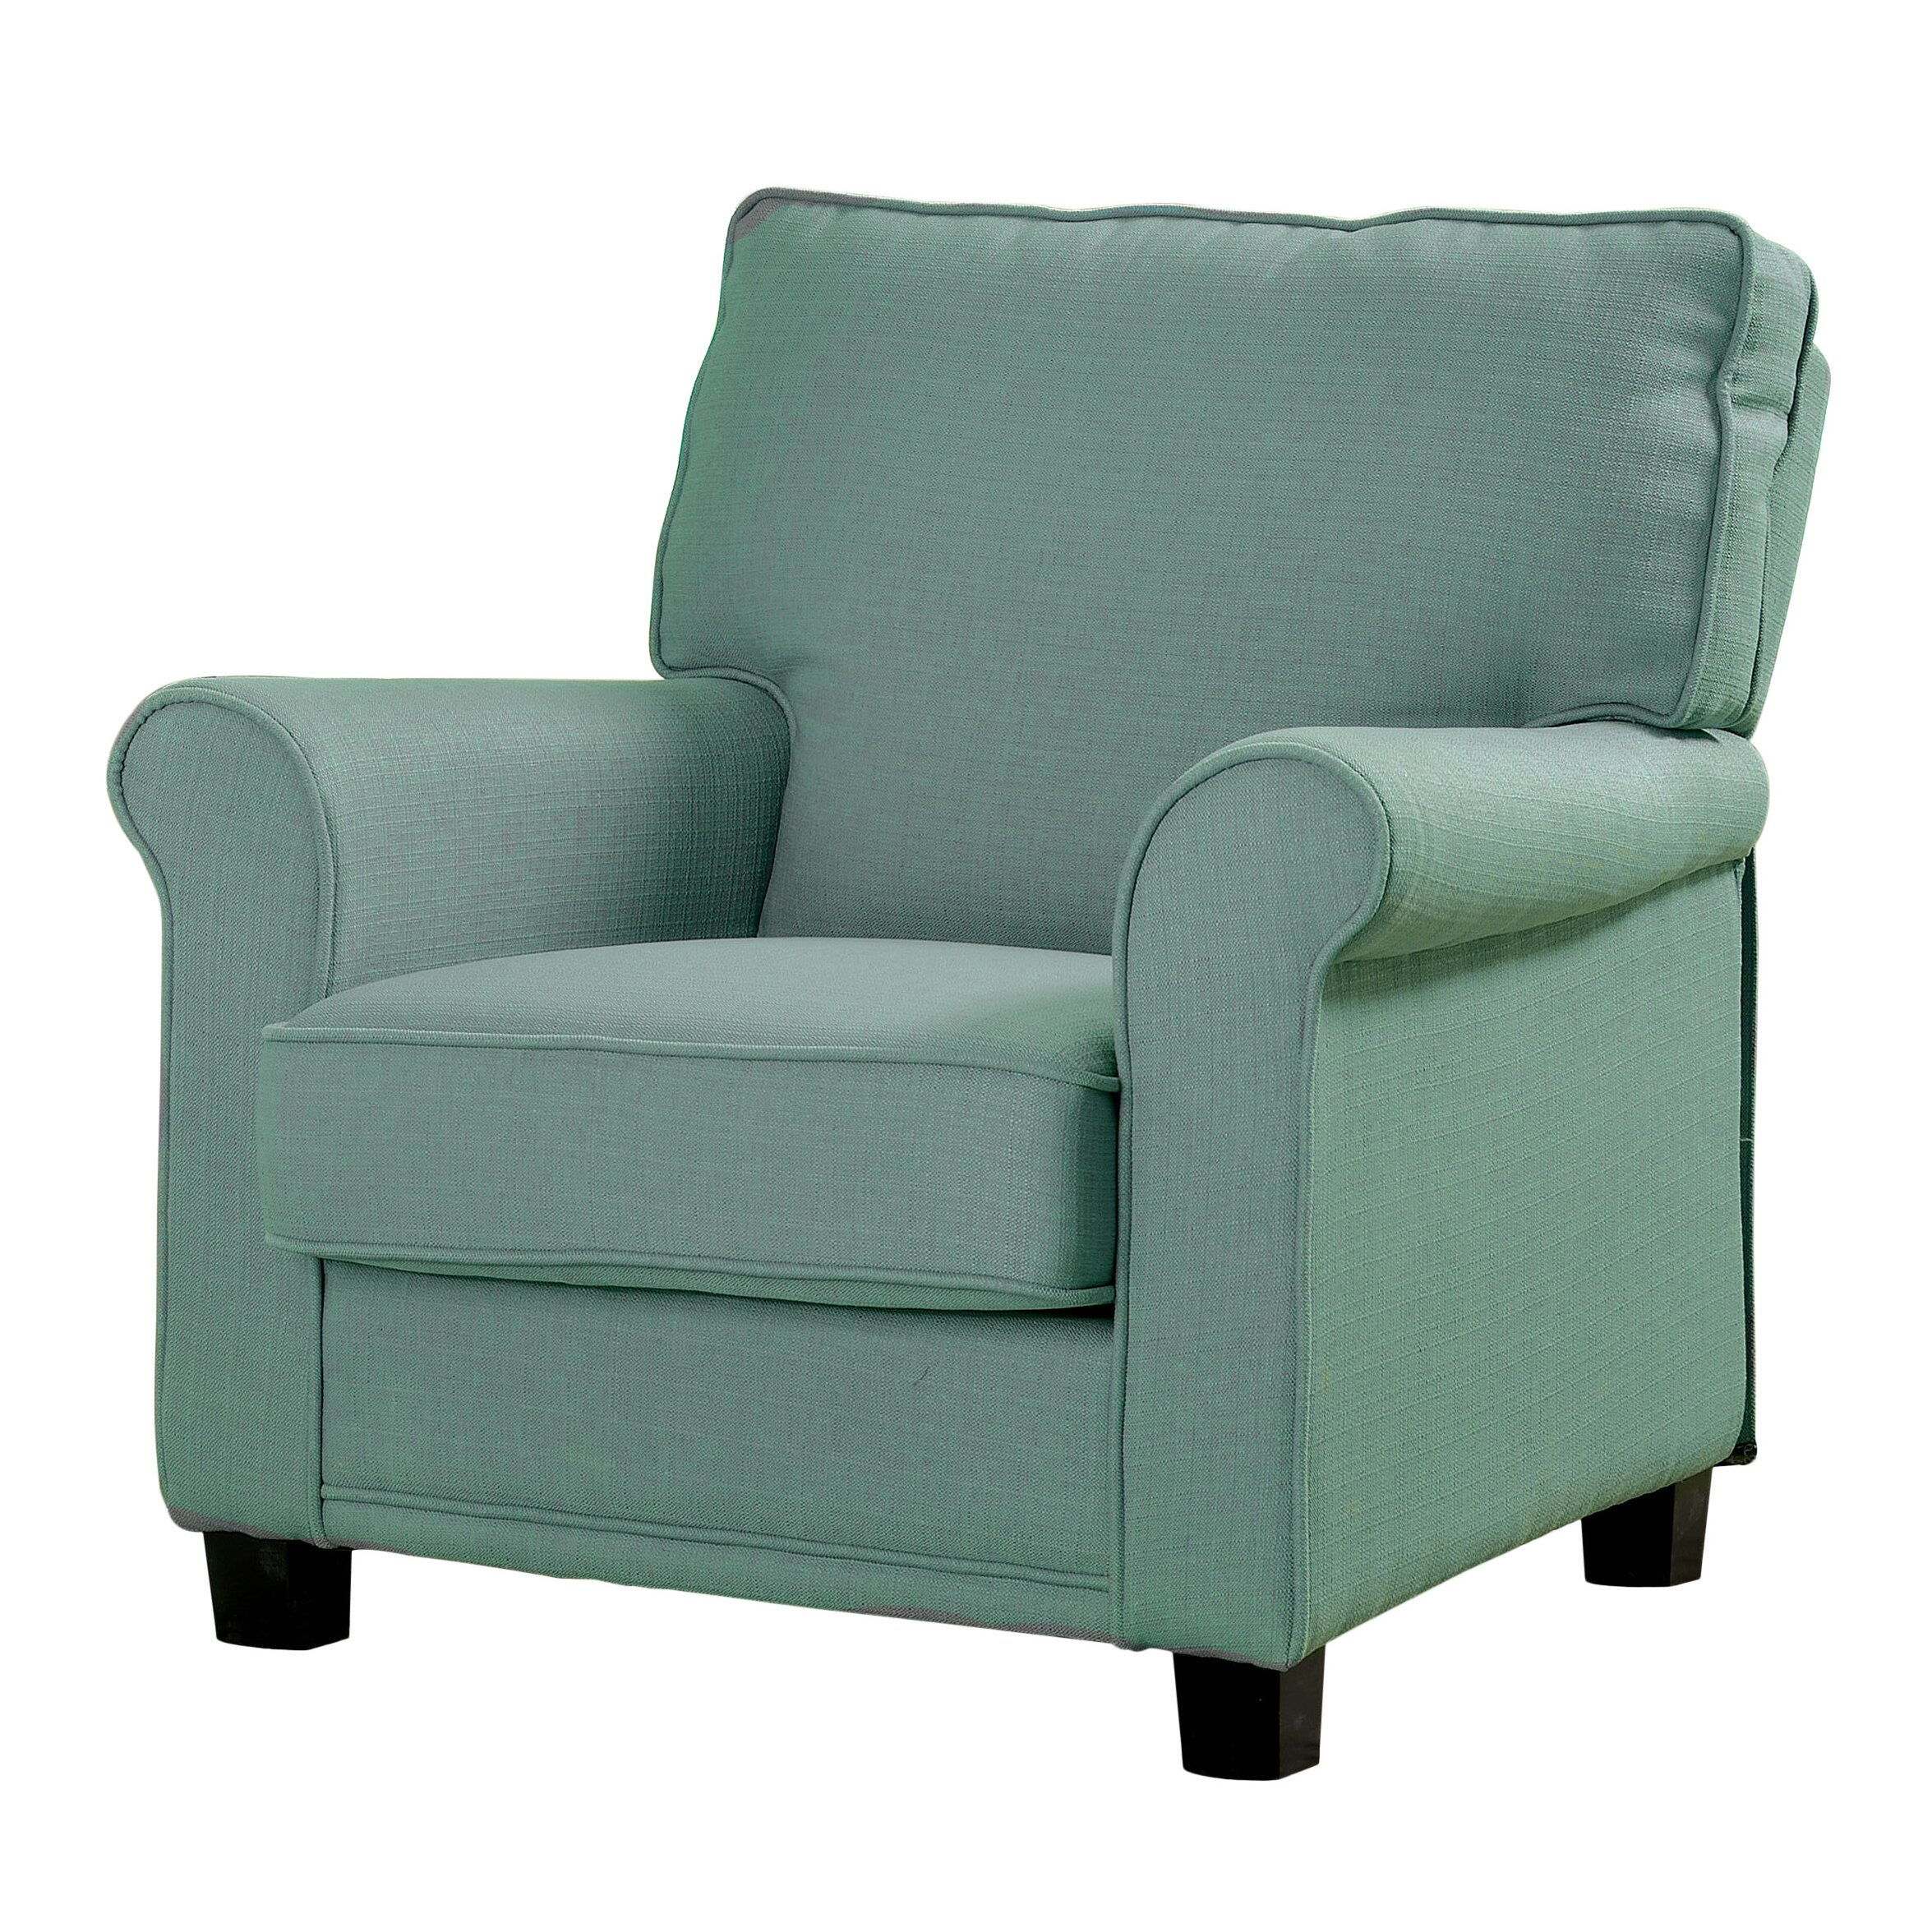 Hokku Designs Harrow Arm Chair & Reviews | Wayfair